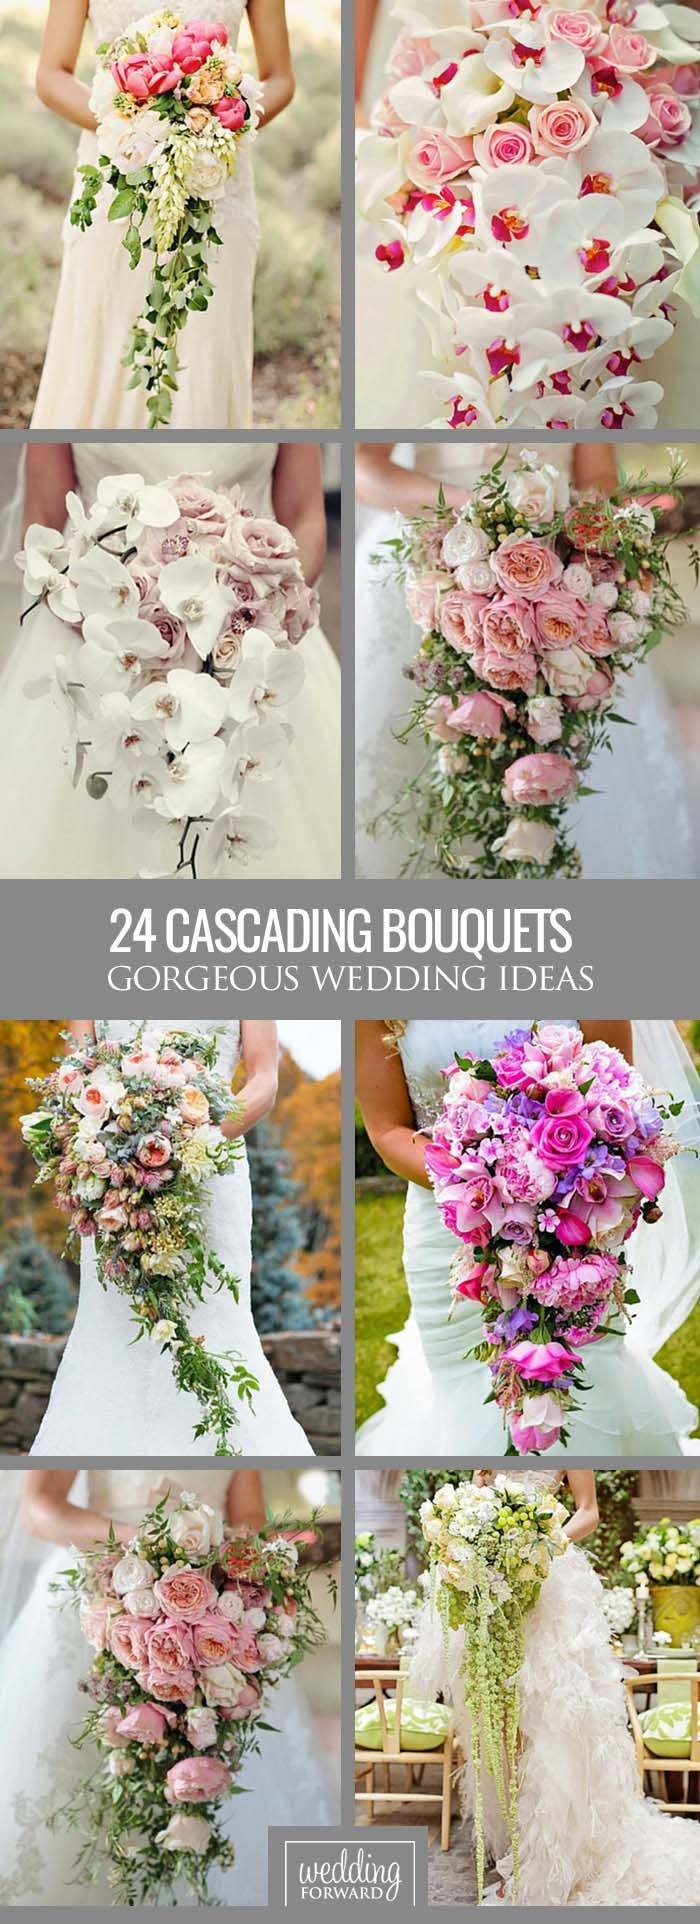 //24 Gorgeous Cascading Wedding Bouquets ❤ Modern cascading (or pageant) bouquets are different from traditional round bouquets and look stunning with roses, orchids, peonies, lilies and dahlias. See more: http://www.weddingforward.com/cascading-wedding-bouquets/ #weddings #bouquet